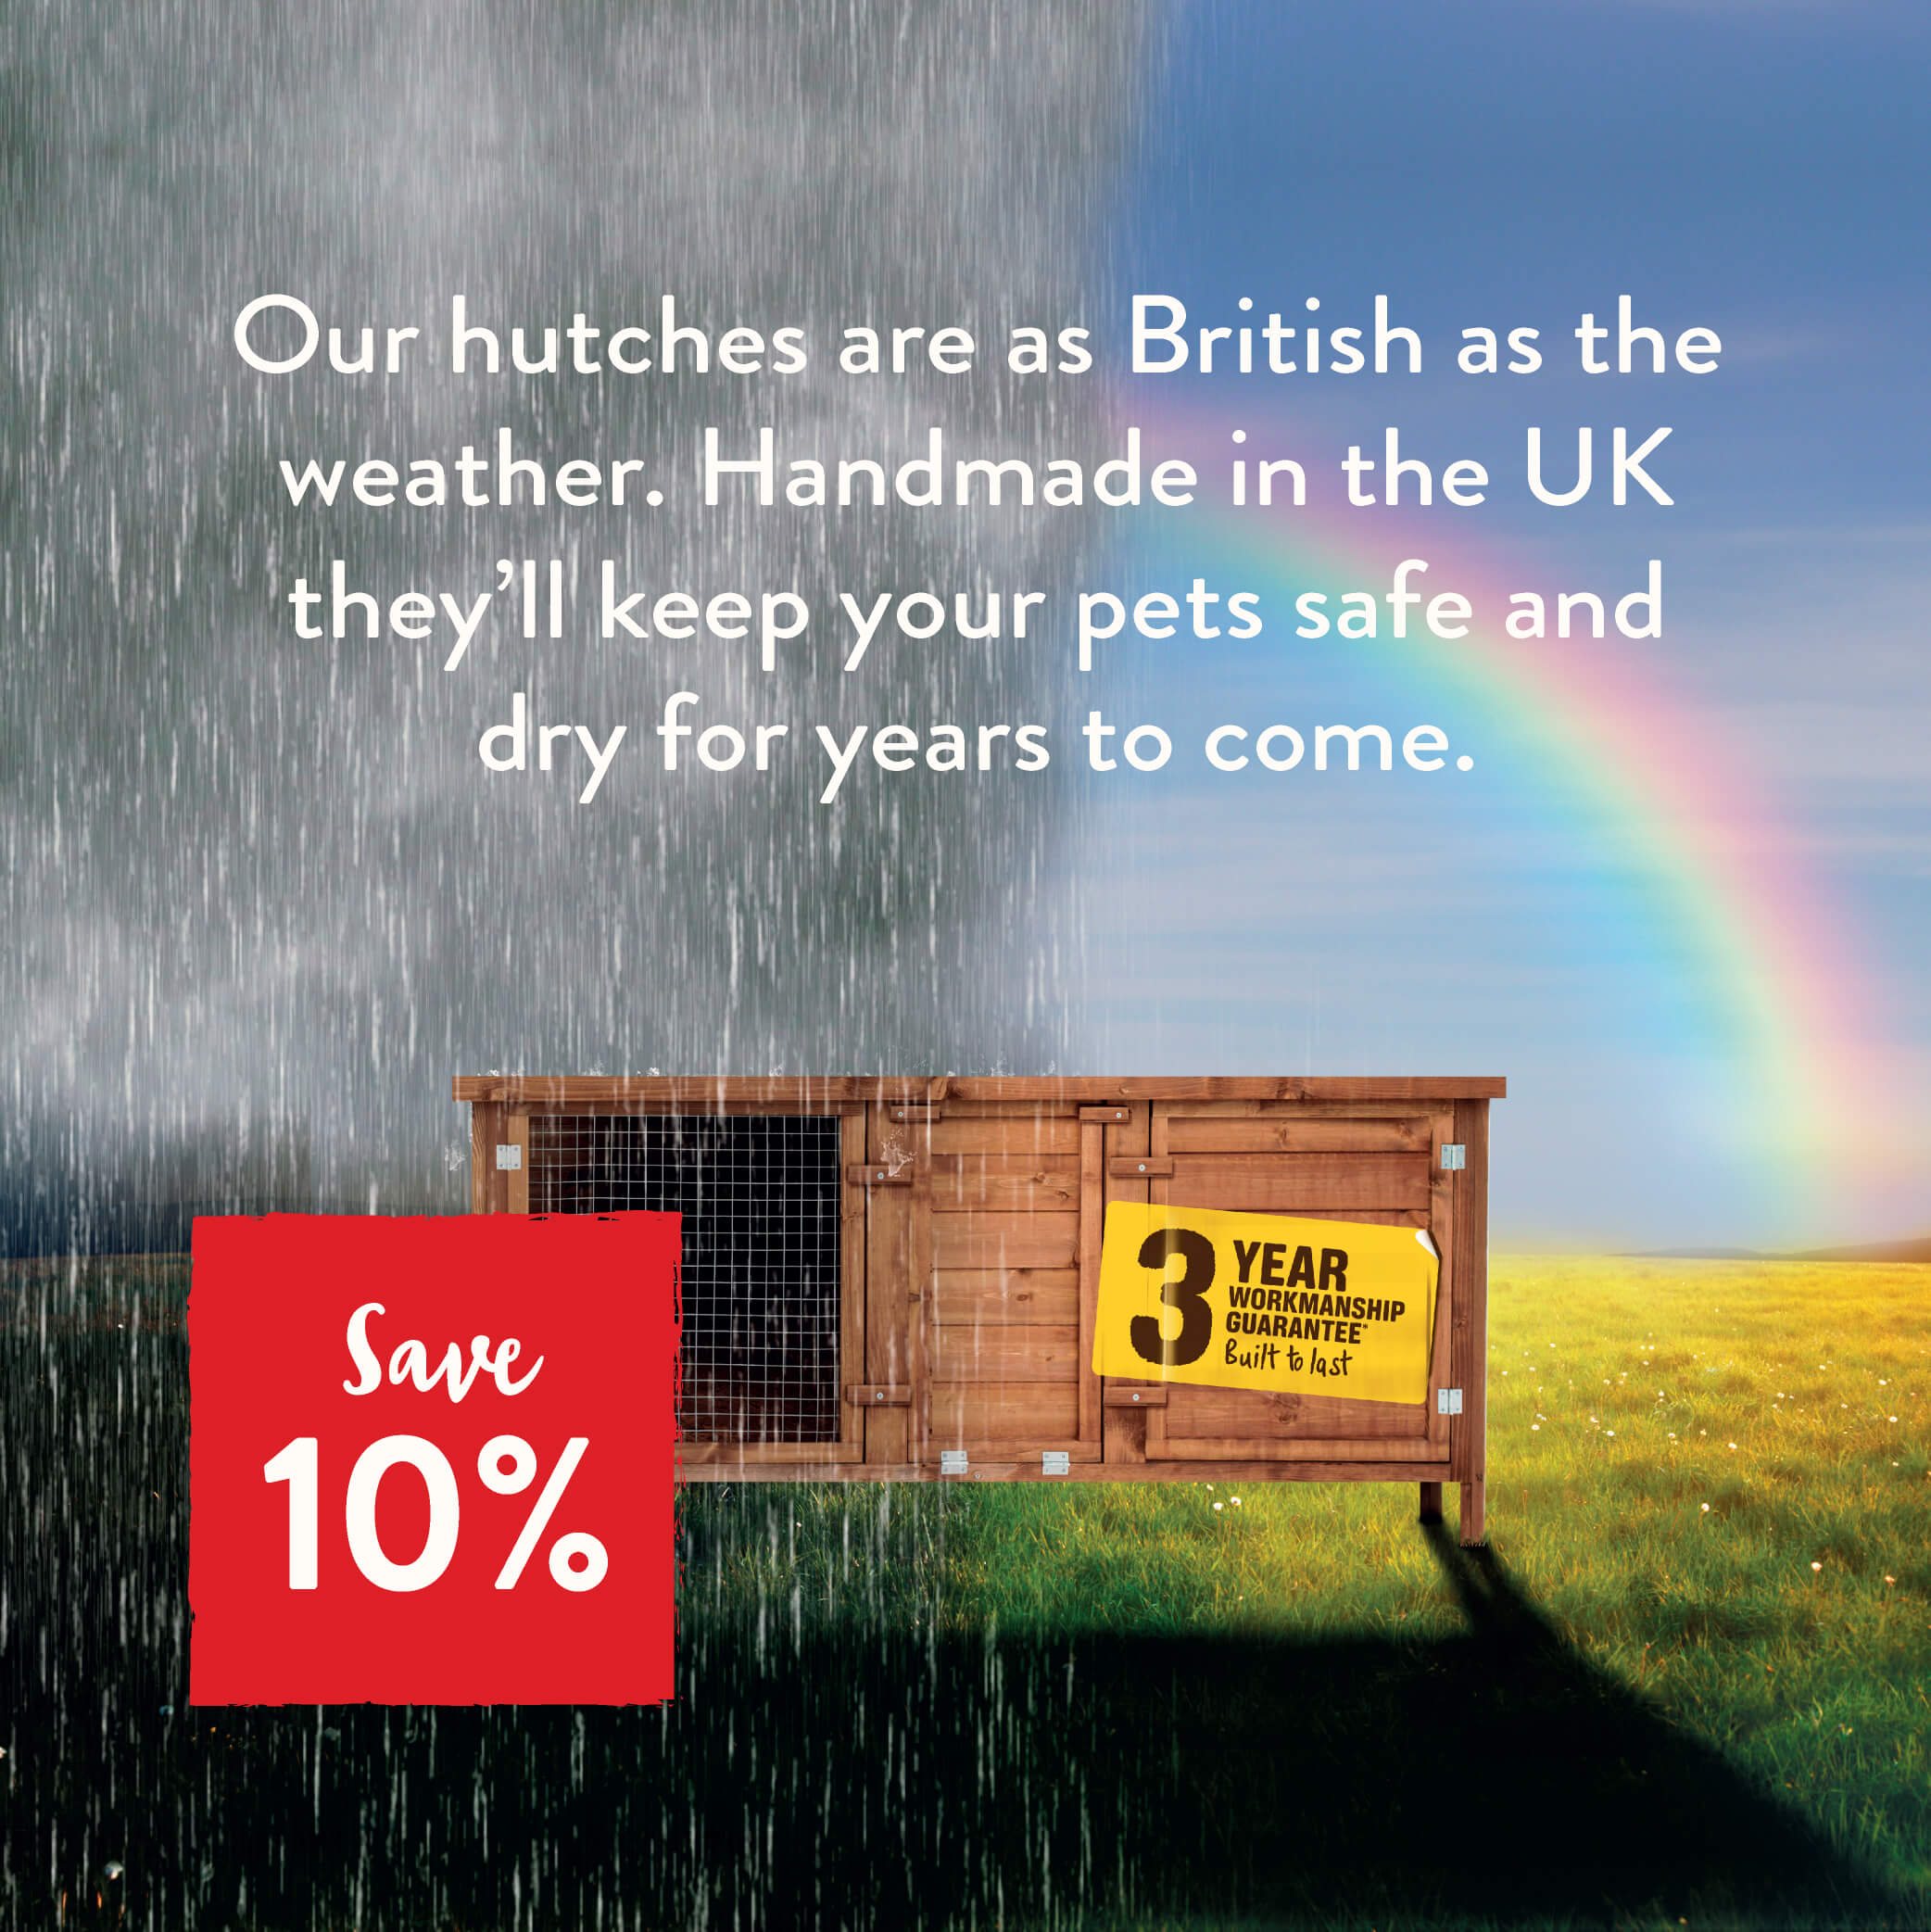 Our hutches are as British as the weather! Save 10%